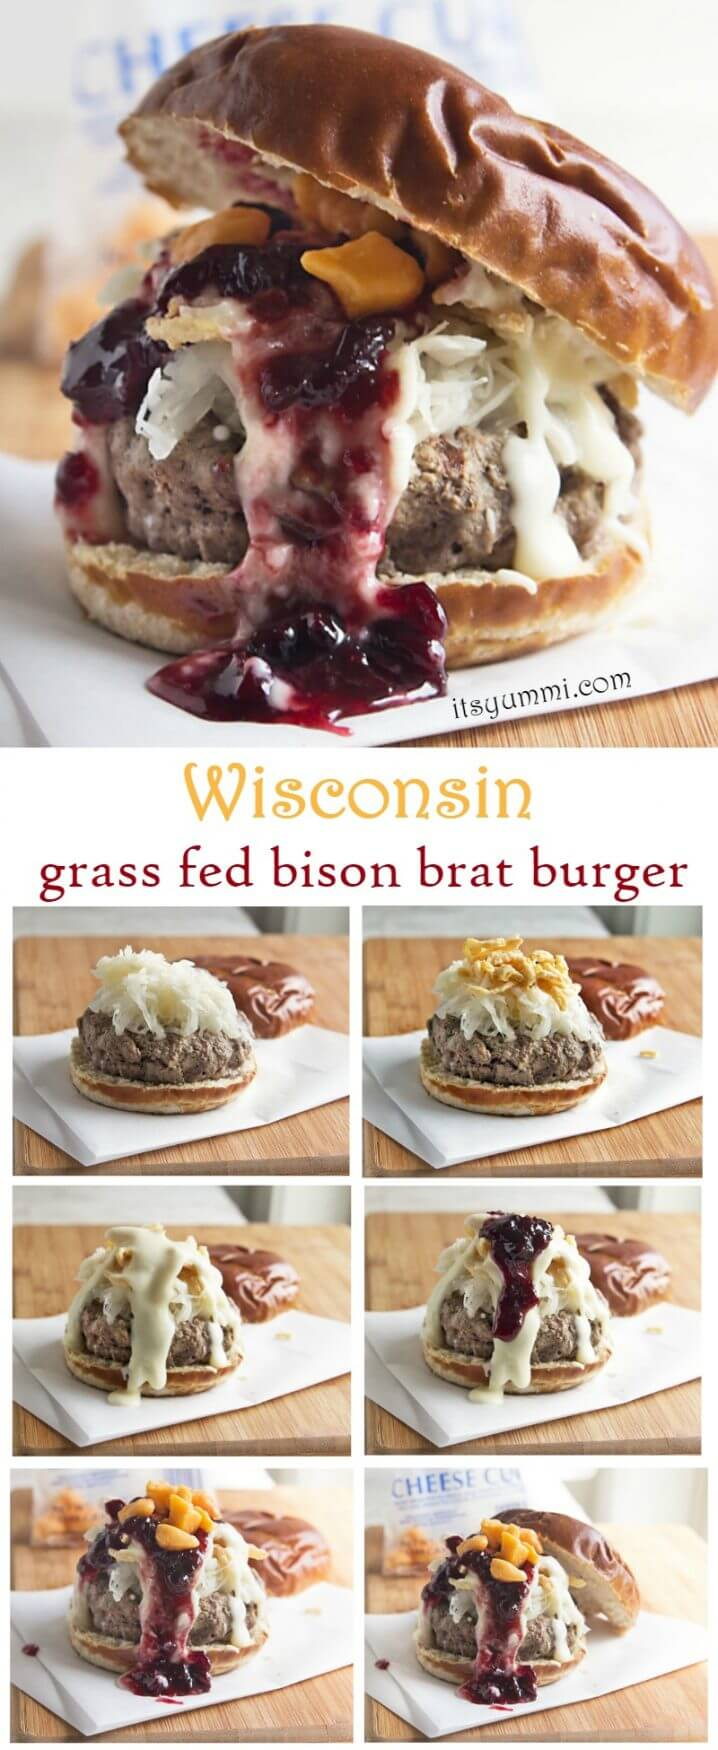 Wisconsin Grass Fed Bison Bratwurst Burger - made with fresh ingredients from Wisconsin! Door County cherry jam, homemade beer cheese sauce, and fresh, squeaky cheese curds. This is a BIG delicious burger! Recipe from @itsyummi